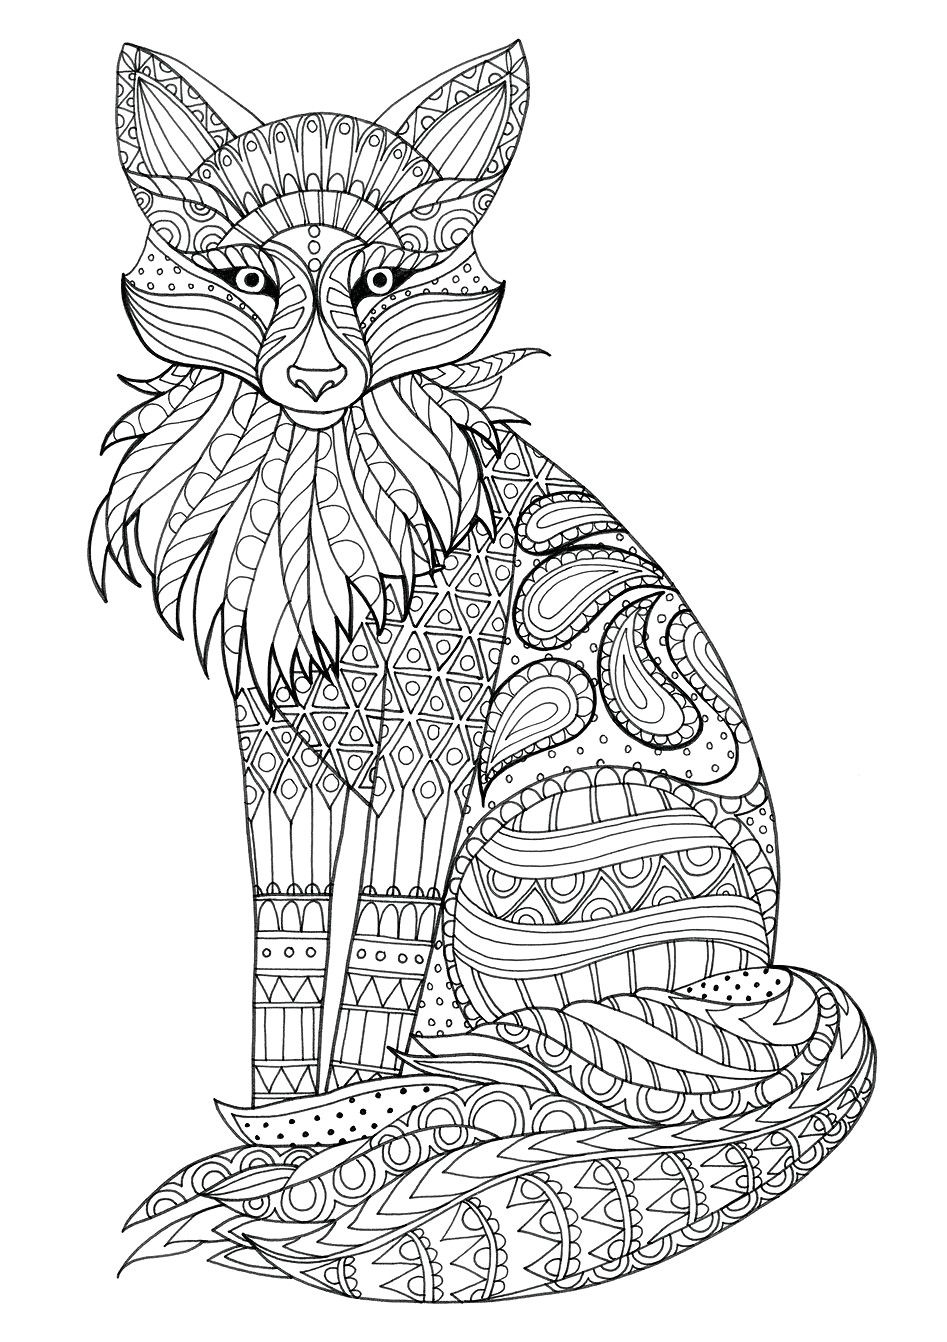 I Love This Fox Coloring Pic Just Beautiful Fox Coloring Page Animal Coloring Pages Pyrography Patterns